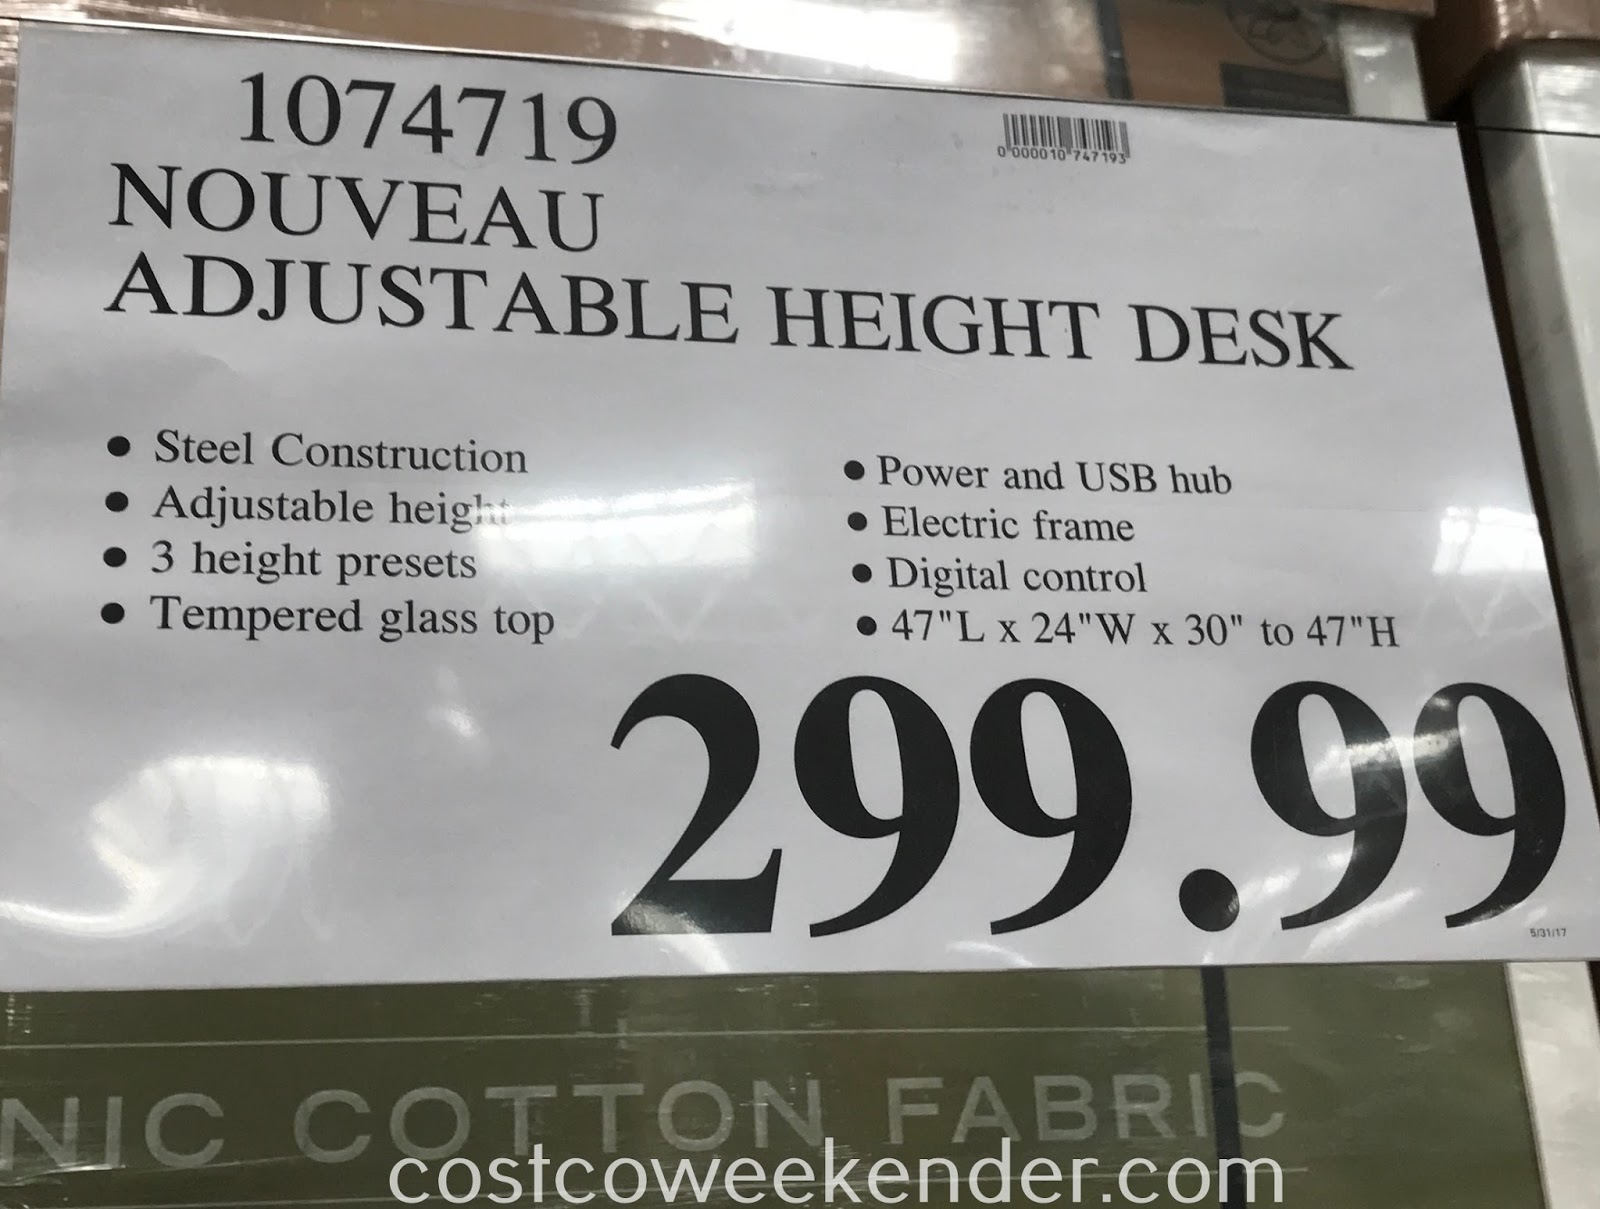 Deal for the Tresanti Nouveau Adjustable Height Desk at Costco